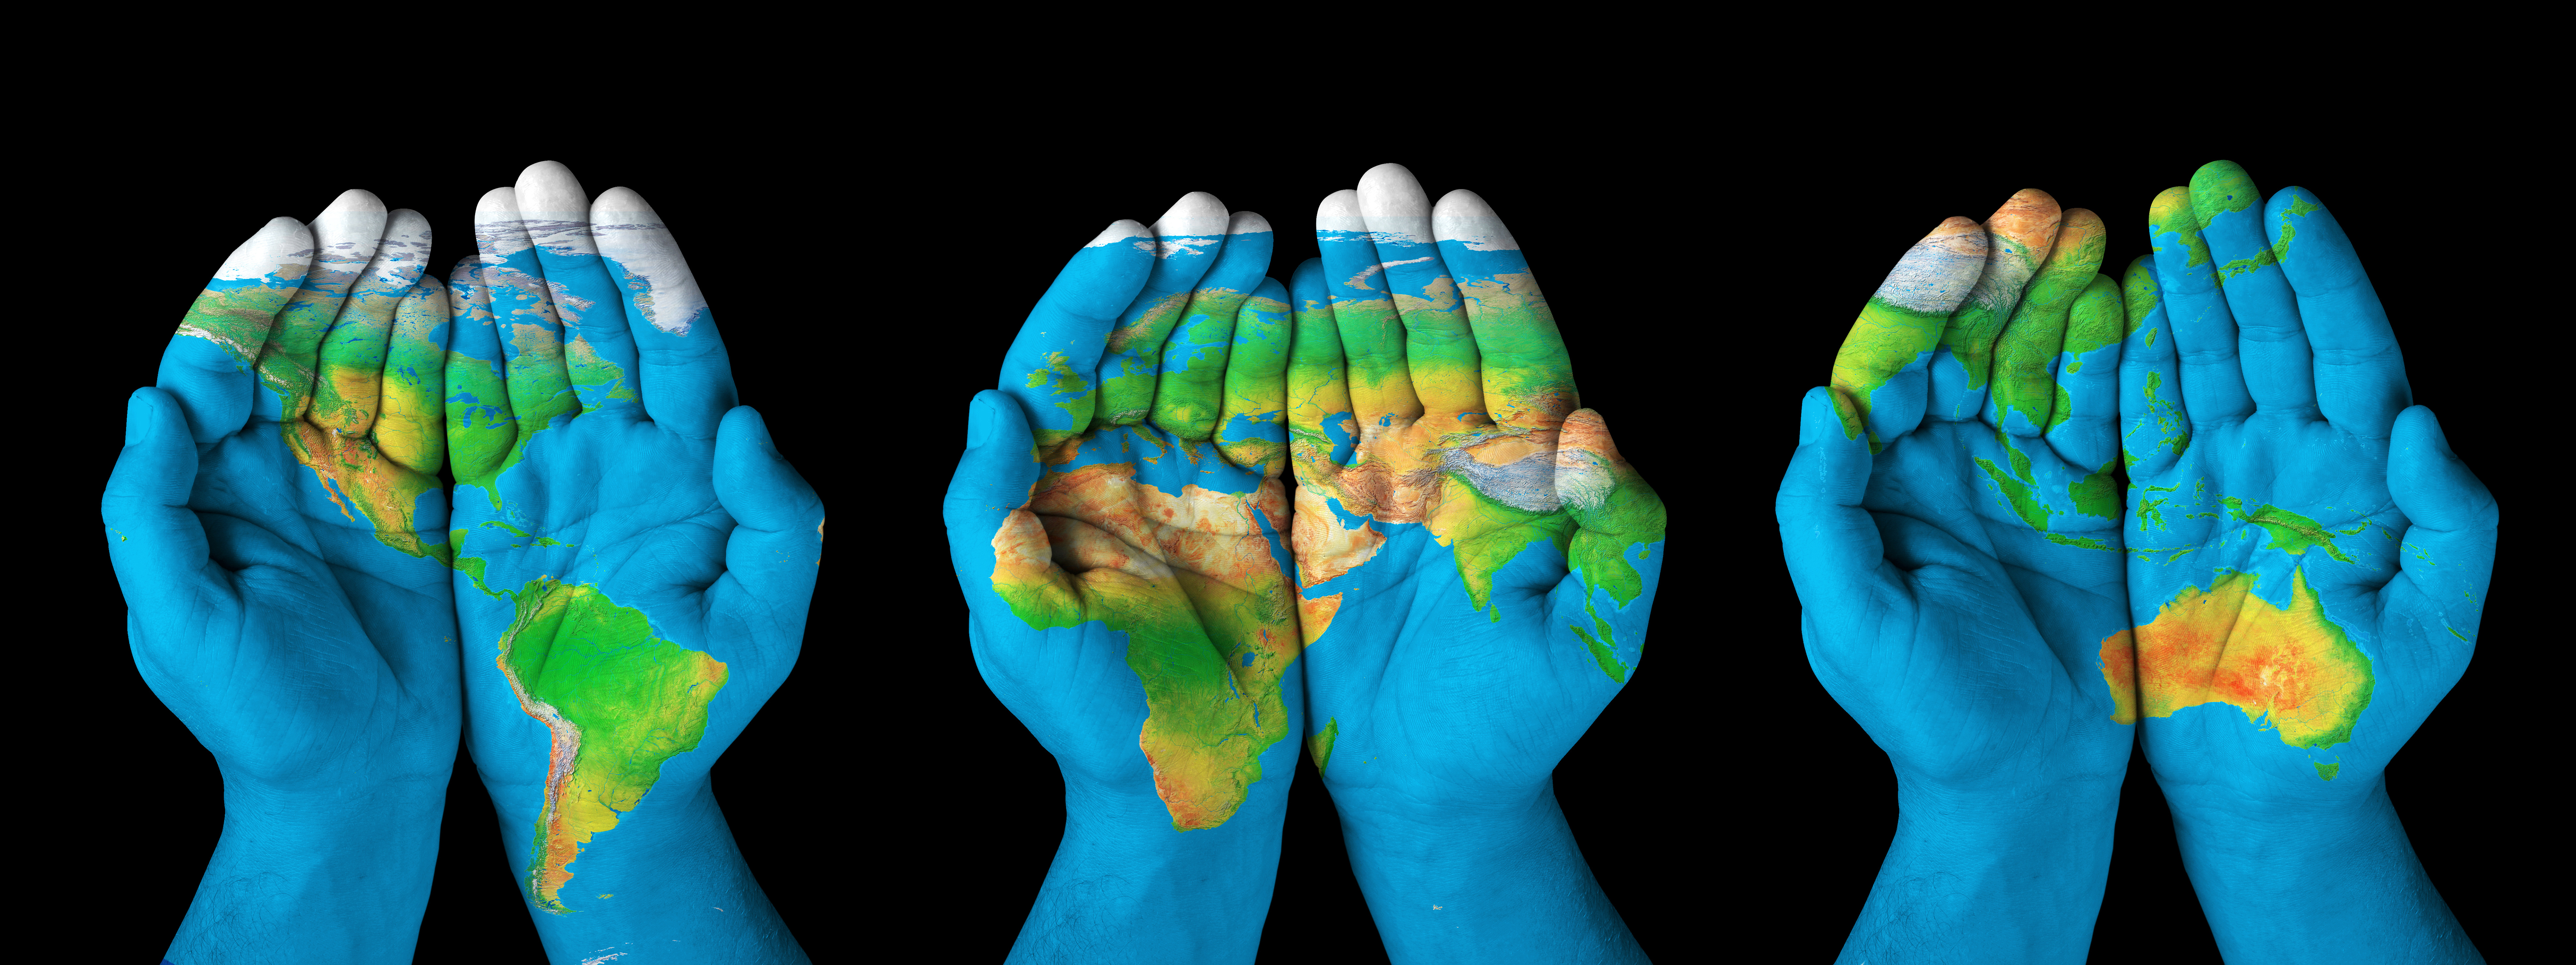 World Map On Hands.Human Analytics Map Painted On Hands Concept Of Having The World